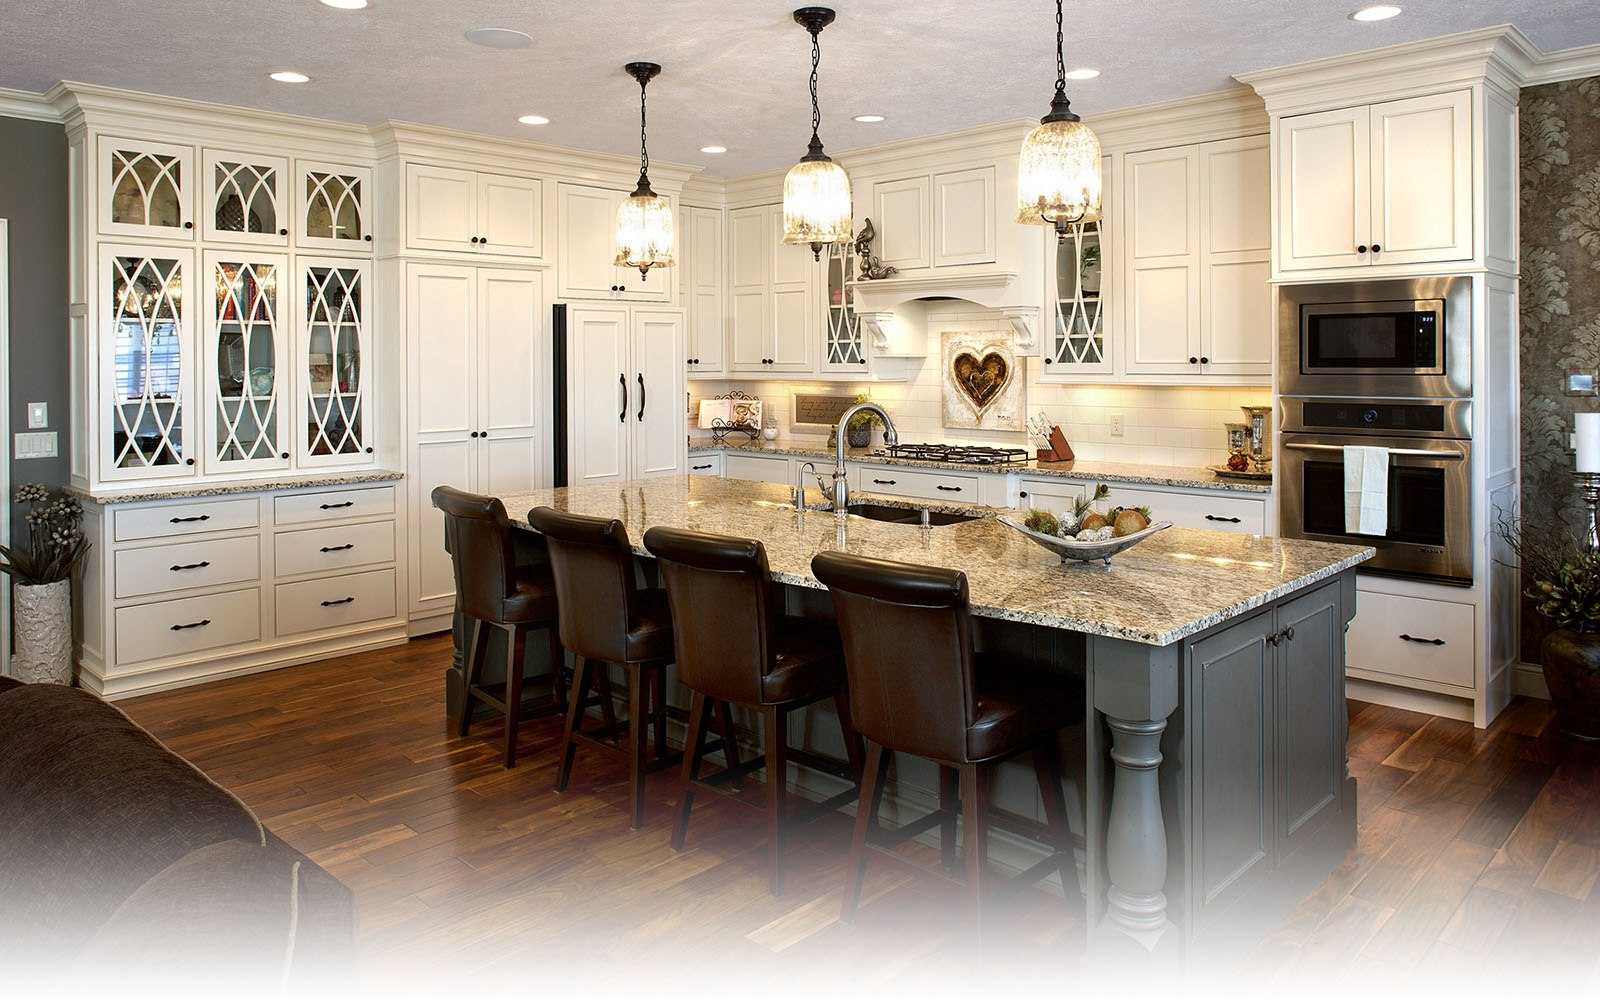 Kitchen Cabinets Jamaica kitchen and bath cabinets, design and remodeling - norfolk kitchen